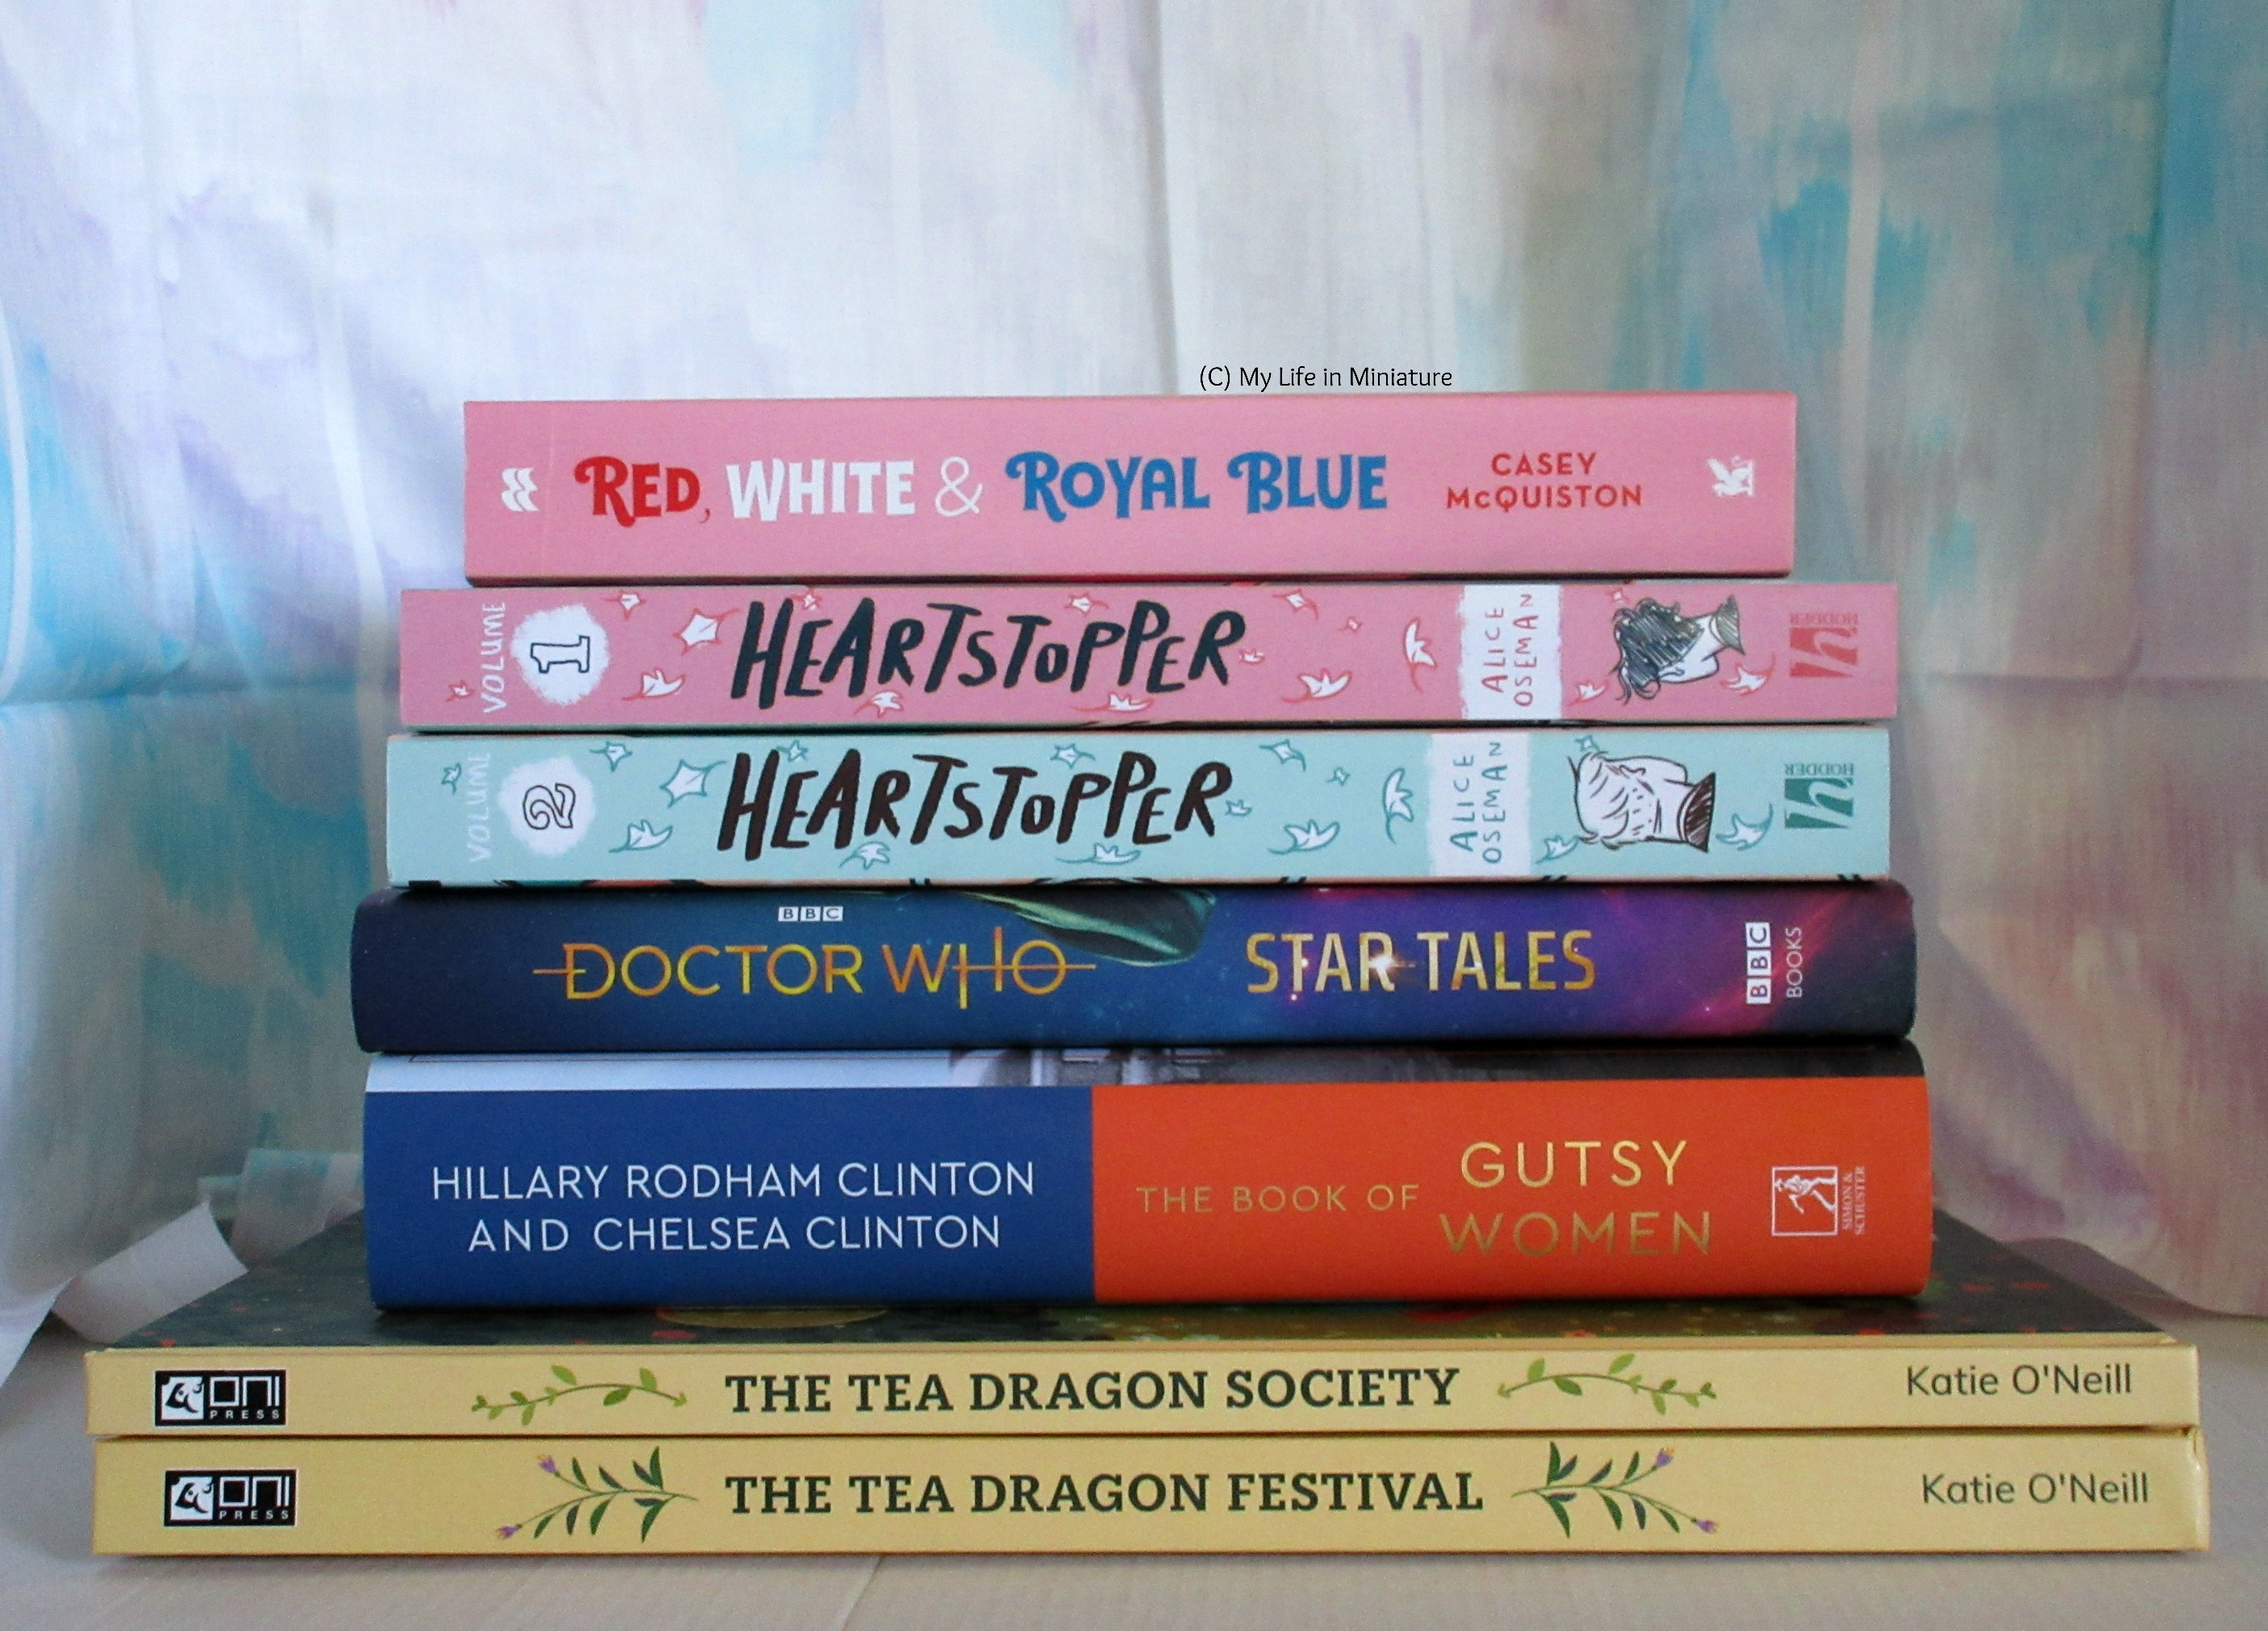 A stack of books, spines facing the camera. Top to bottom, the books are: Red, White and Royal Blue by Casey McQuiston, Heartstopper volumes 1 and 2 by Alice Oseman, Doctor Who Star Tales anthology, The Book of Gutsy Women by Hillary Rodham Clinton and Chelsea Clinton, The Tea Dragon Society and The Tea Dragon Festival by Kay O'Neill.